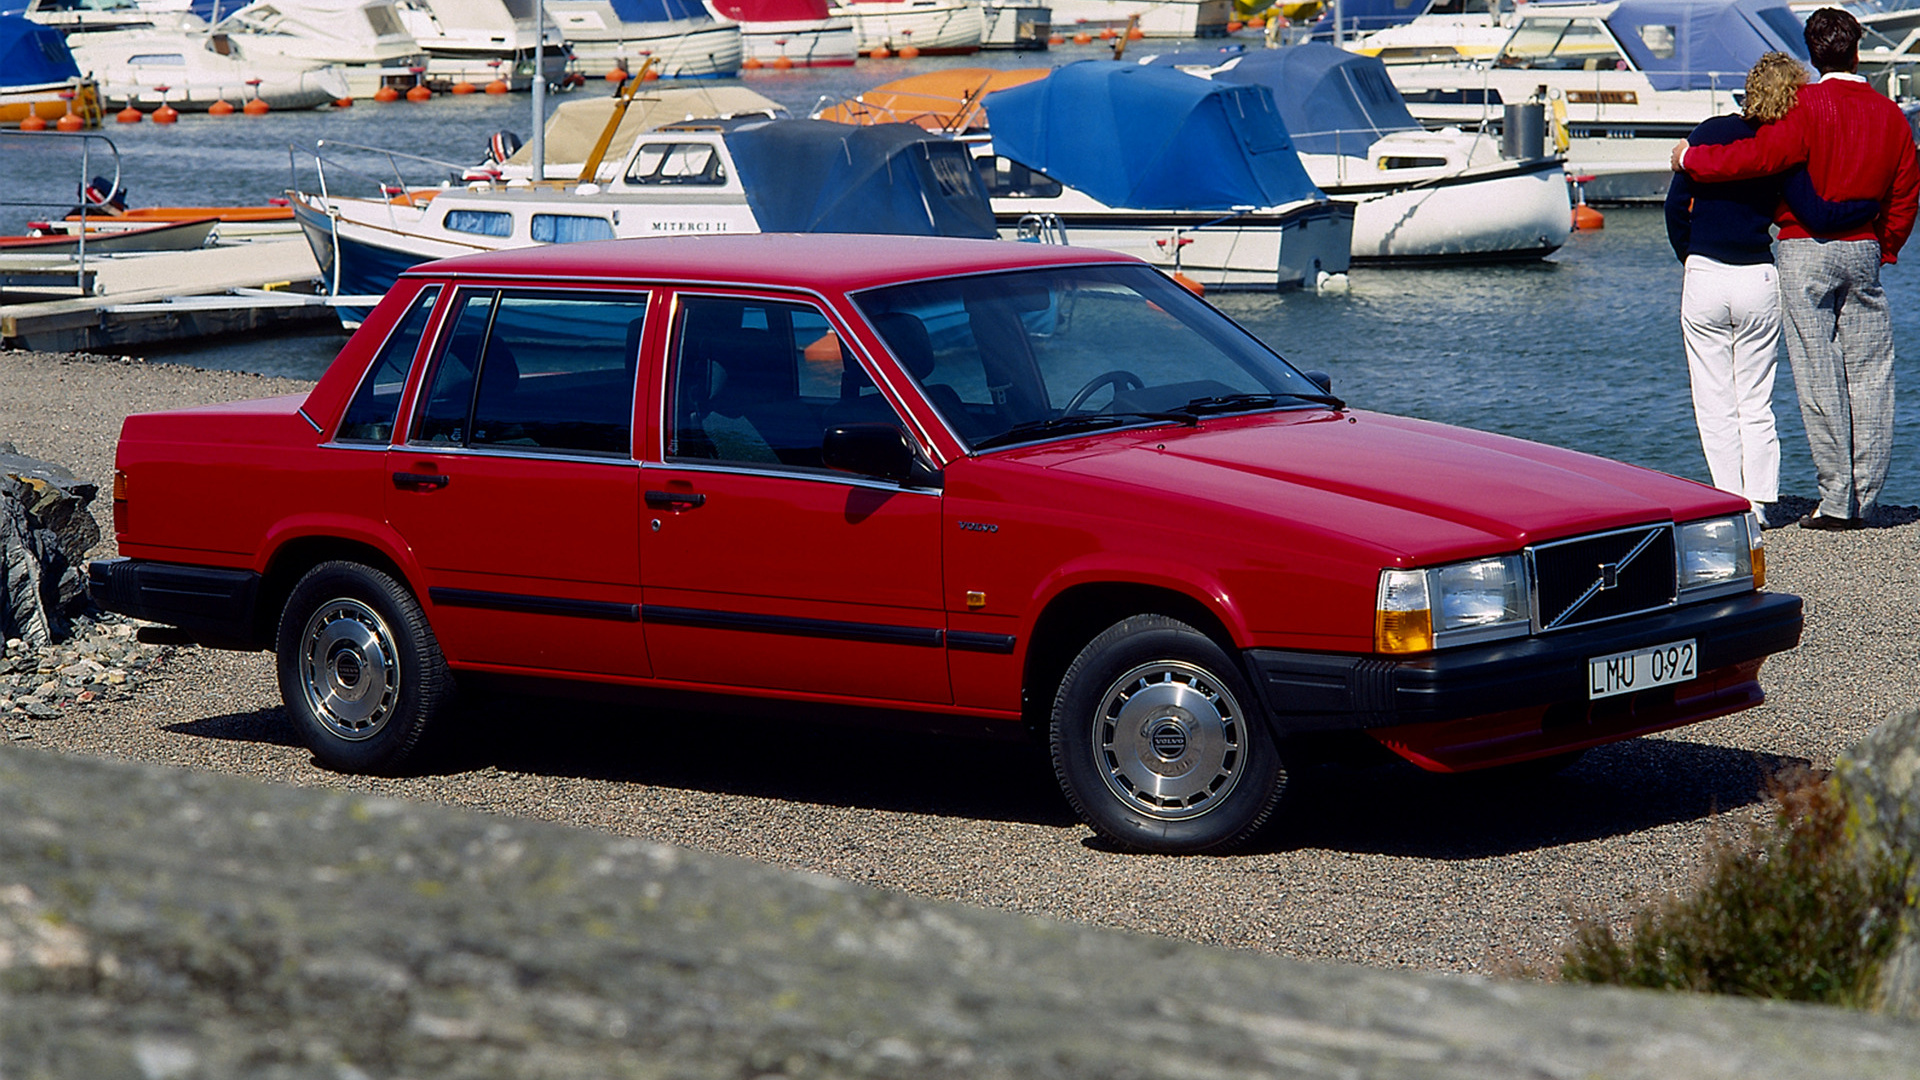 Volvo 740 GL (1984) Wallpapers and HD Images - Car Pixel